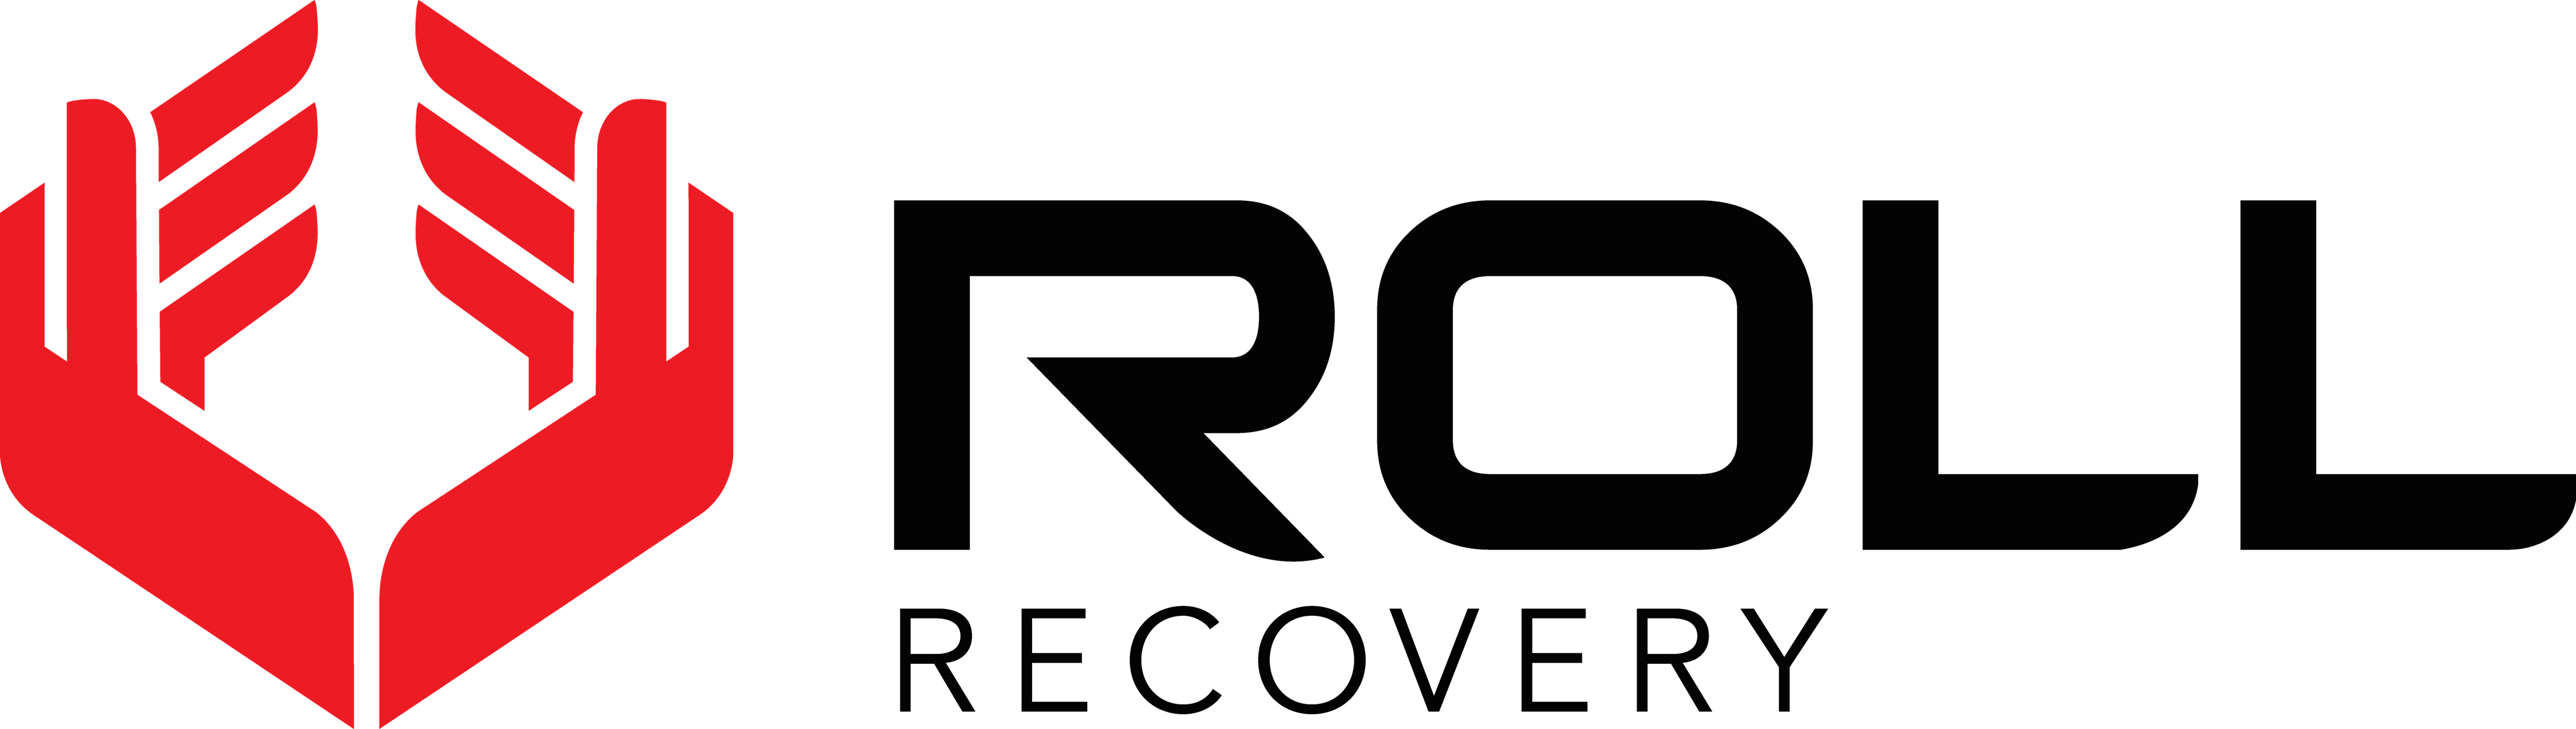 ROLL Recovery LOGO_Black(1)